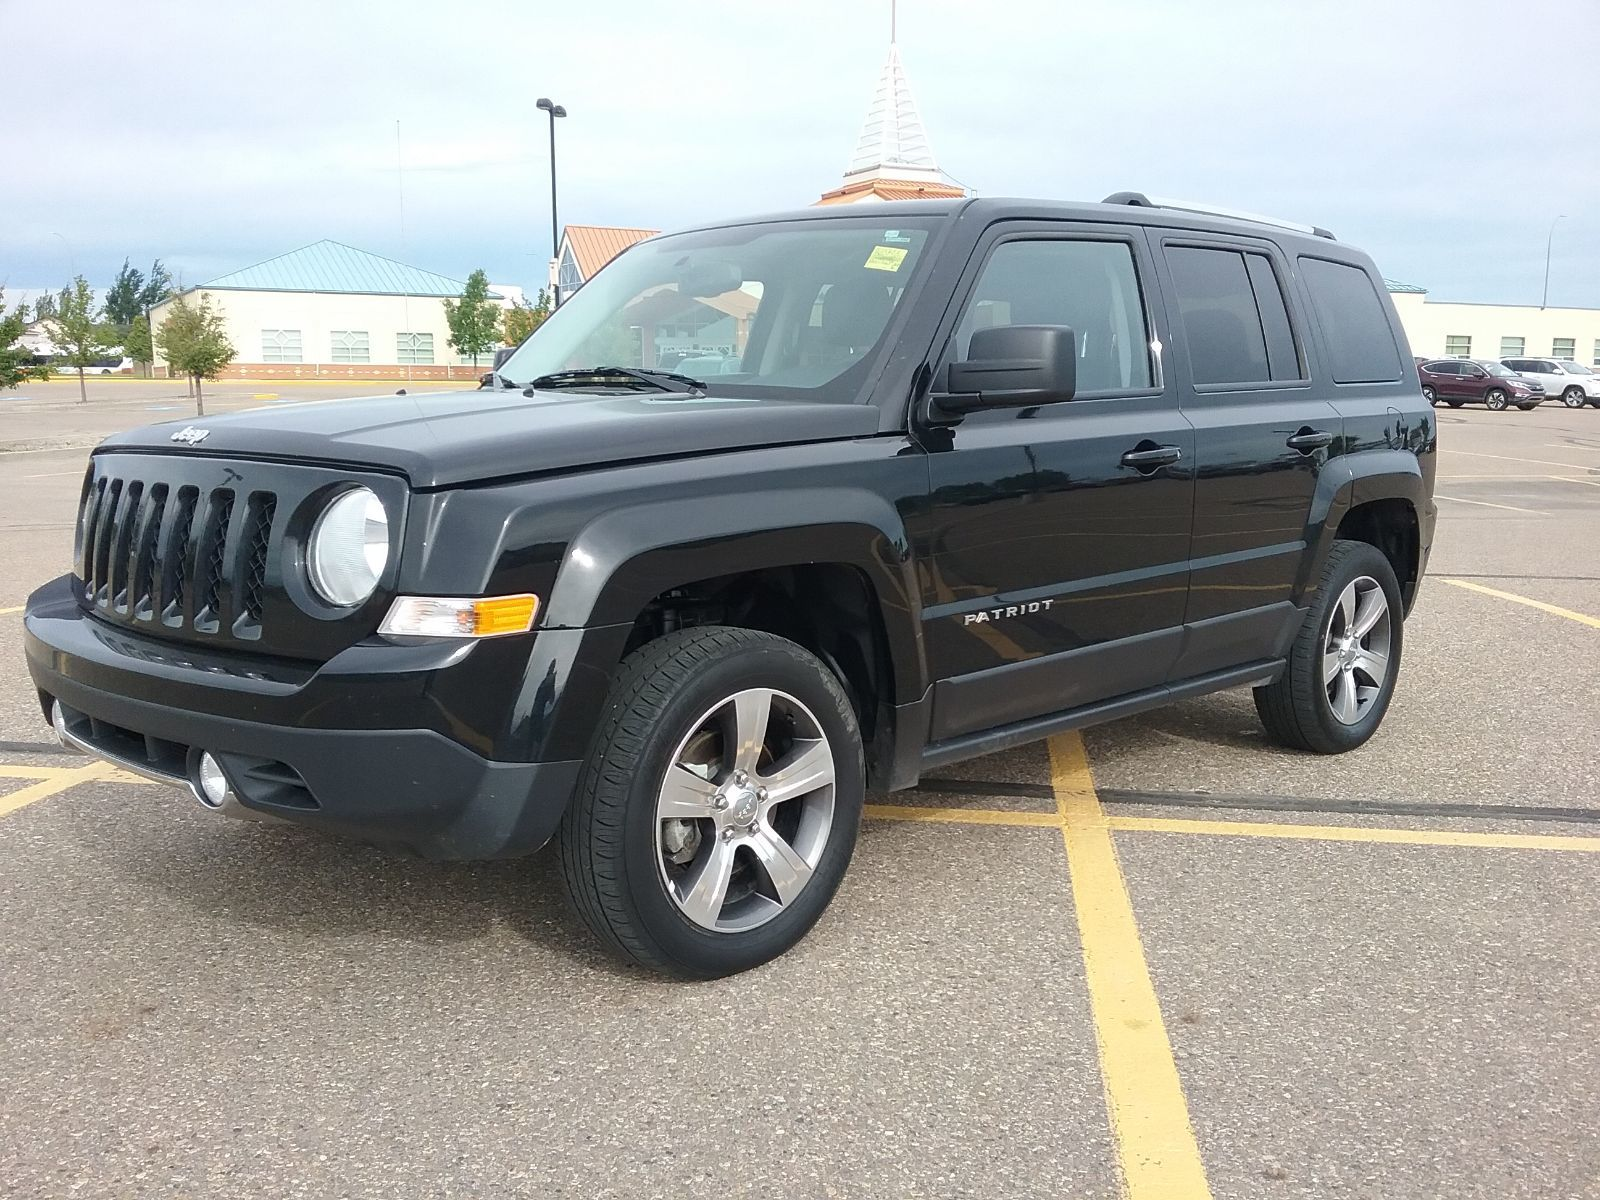 sport at used patriot jeep detail fwd utility premium motors wagon